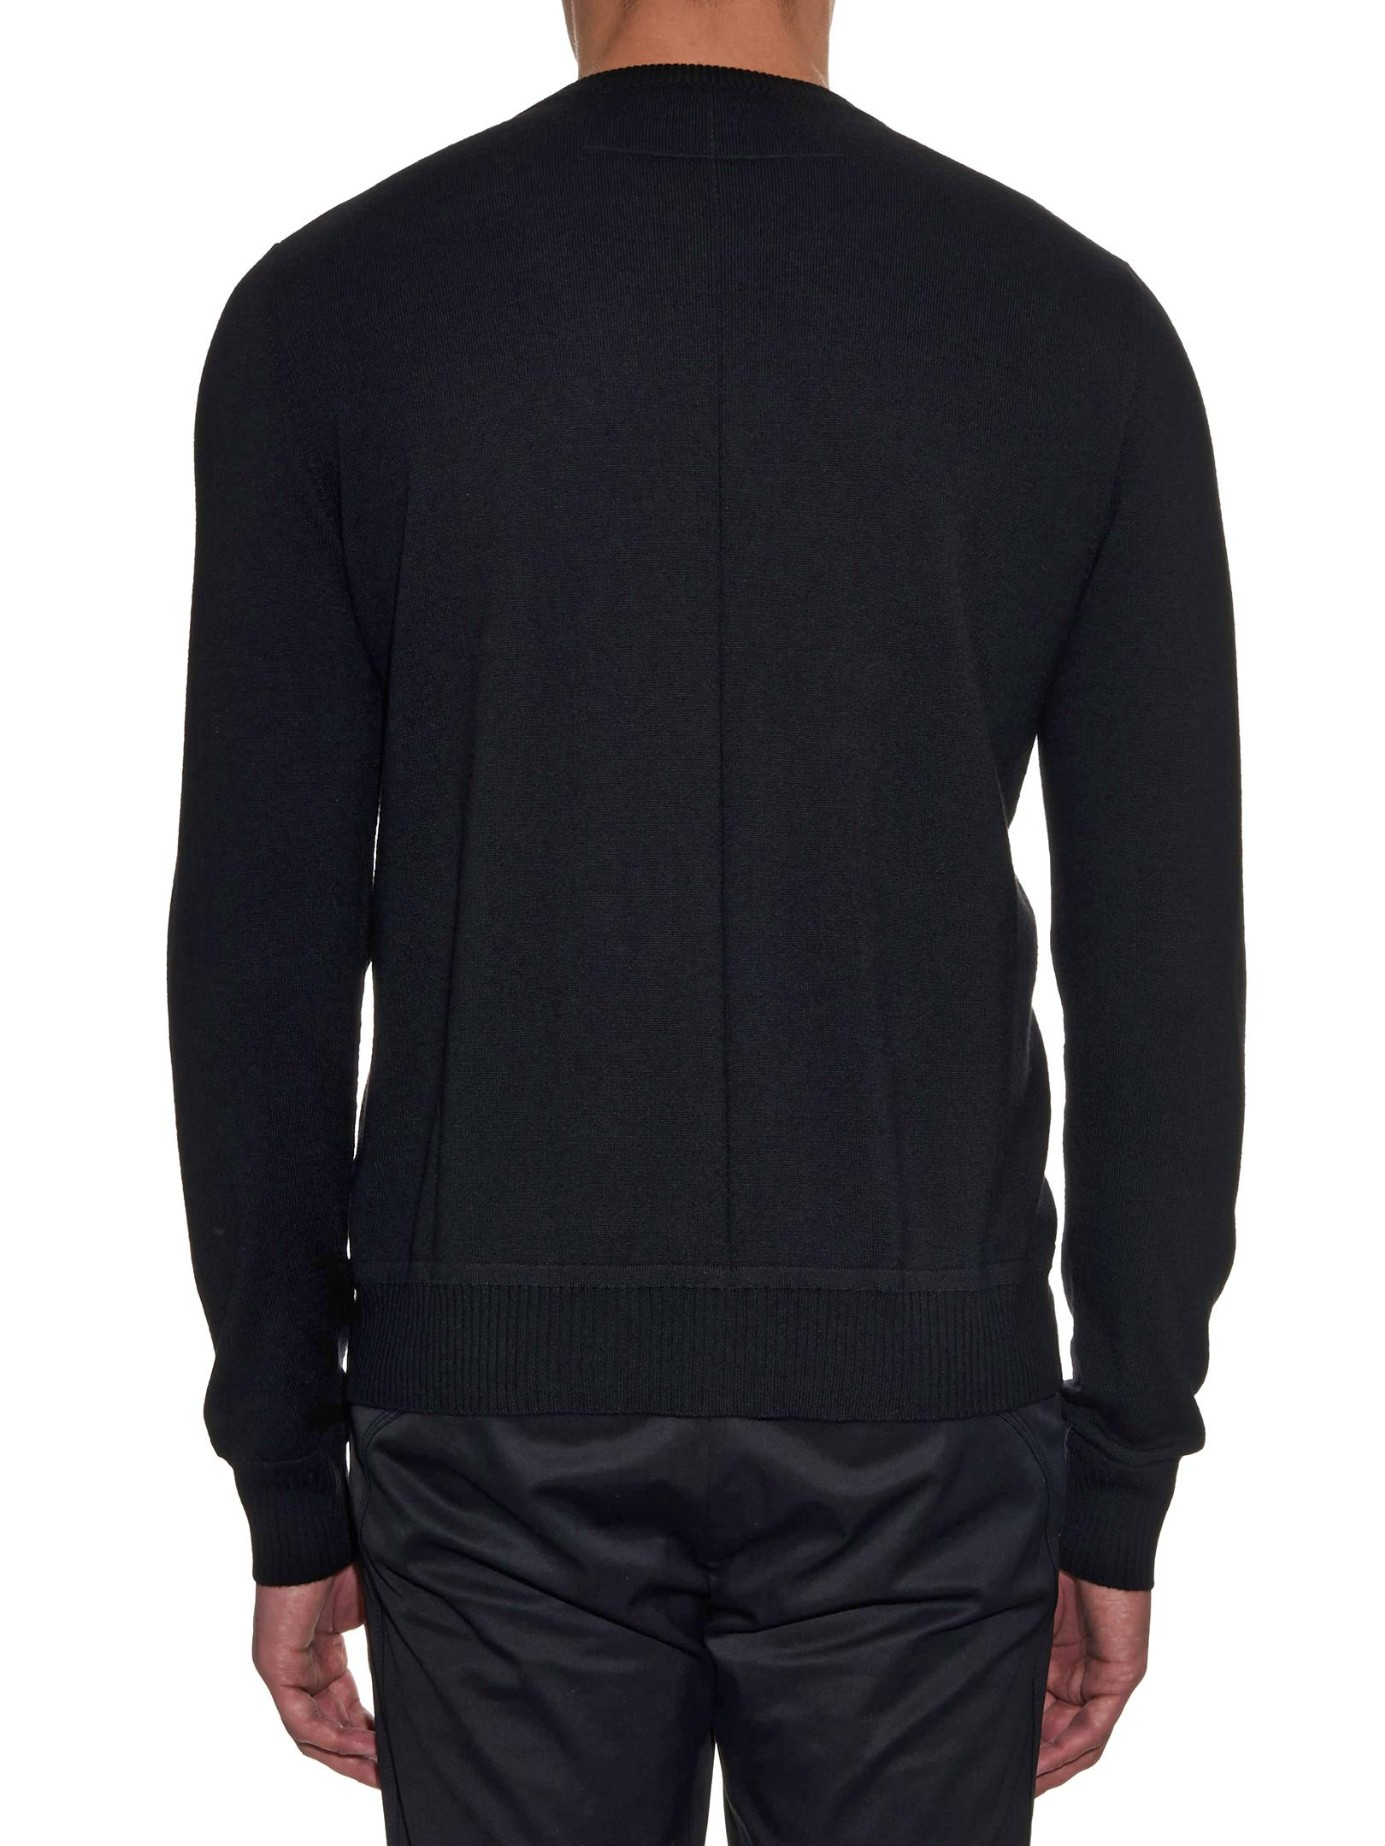 lyst givenchy rottweiler crew neck sweater in black for men. Black Bedroom Furniture Sets. Home Design Ideas